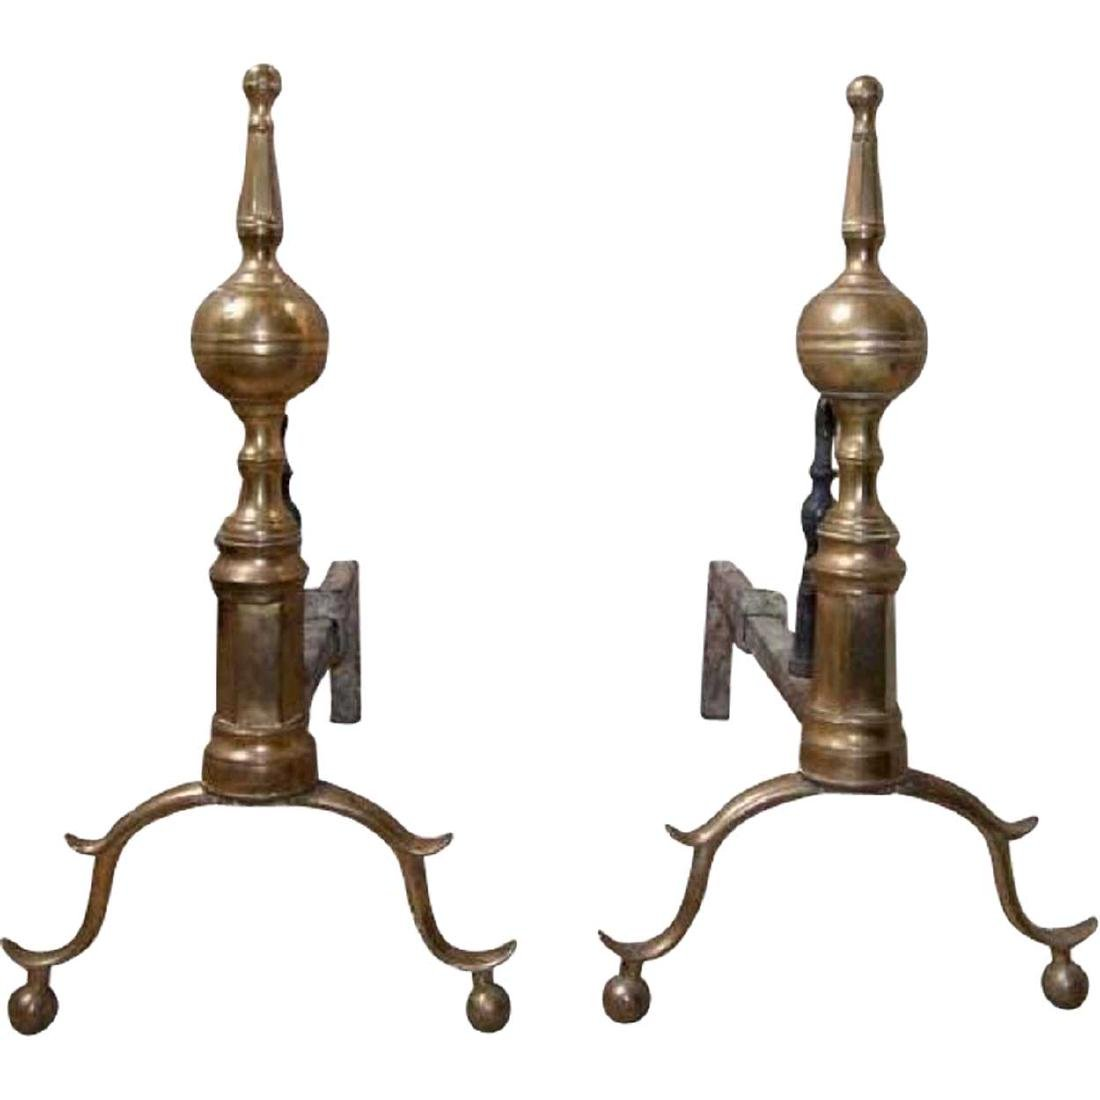 Pair of American New York Federal Bell Andirons